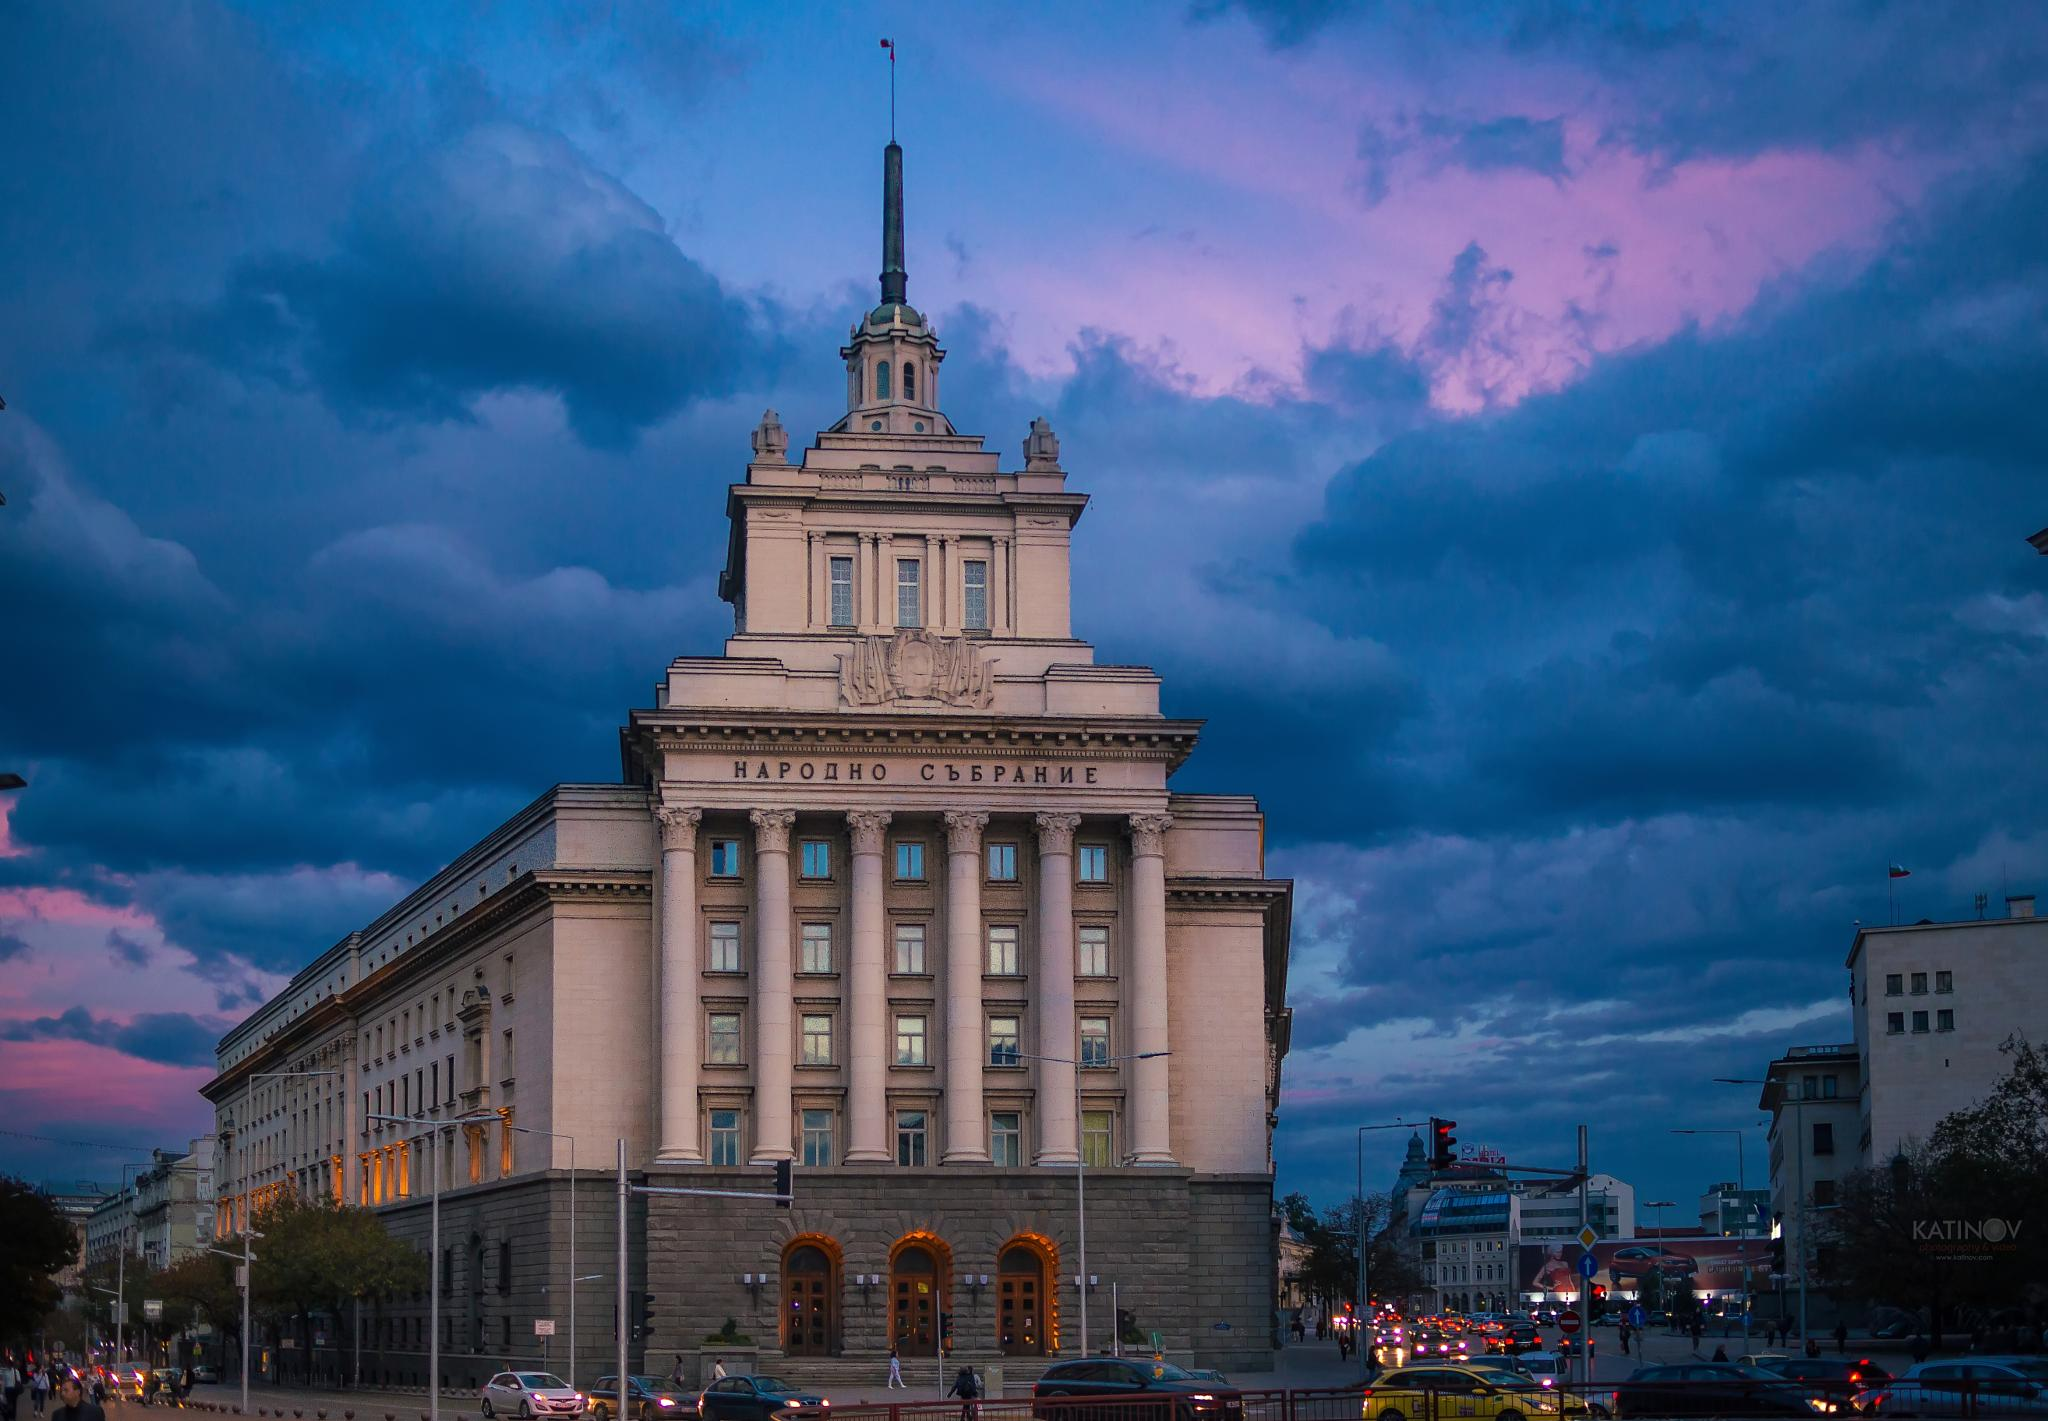 Bulgarian government building by Stoyan Katinov